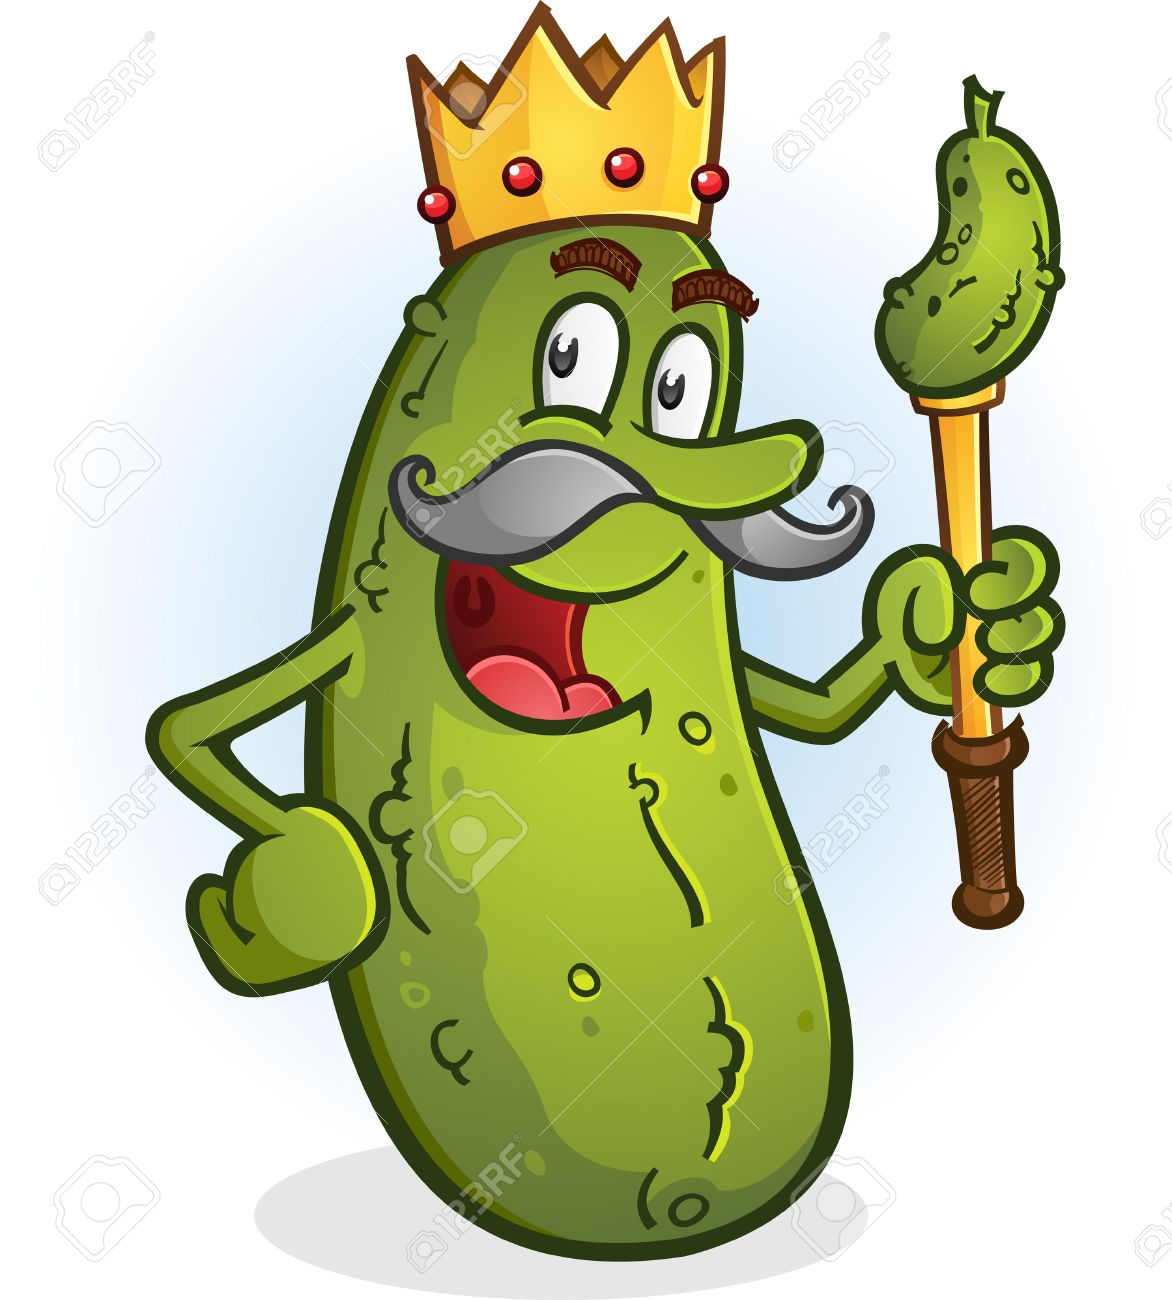 pickle stock photos. royalty free pickle images